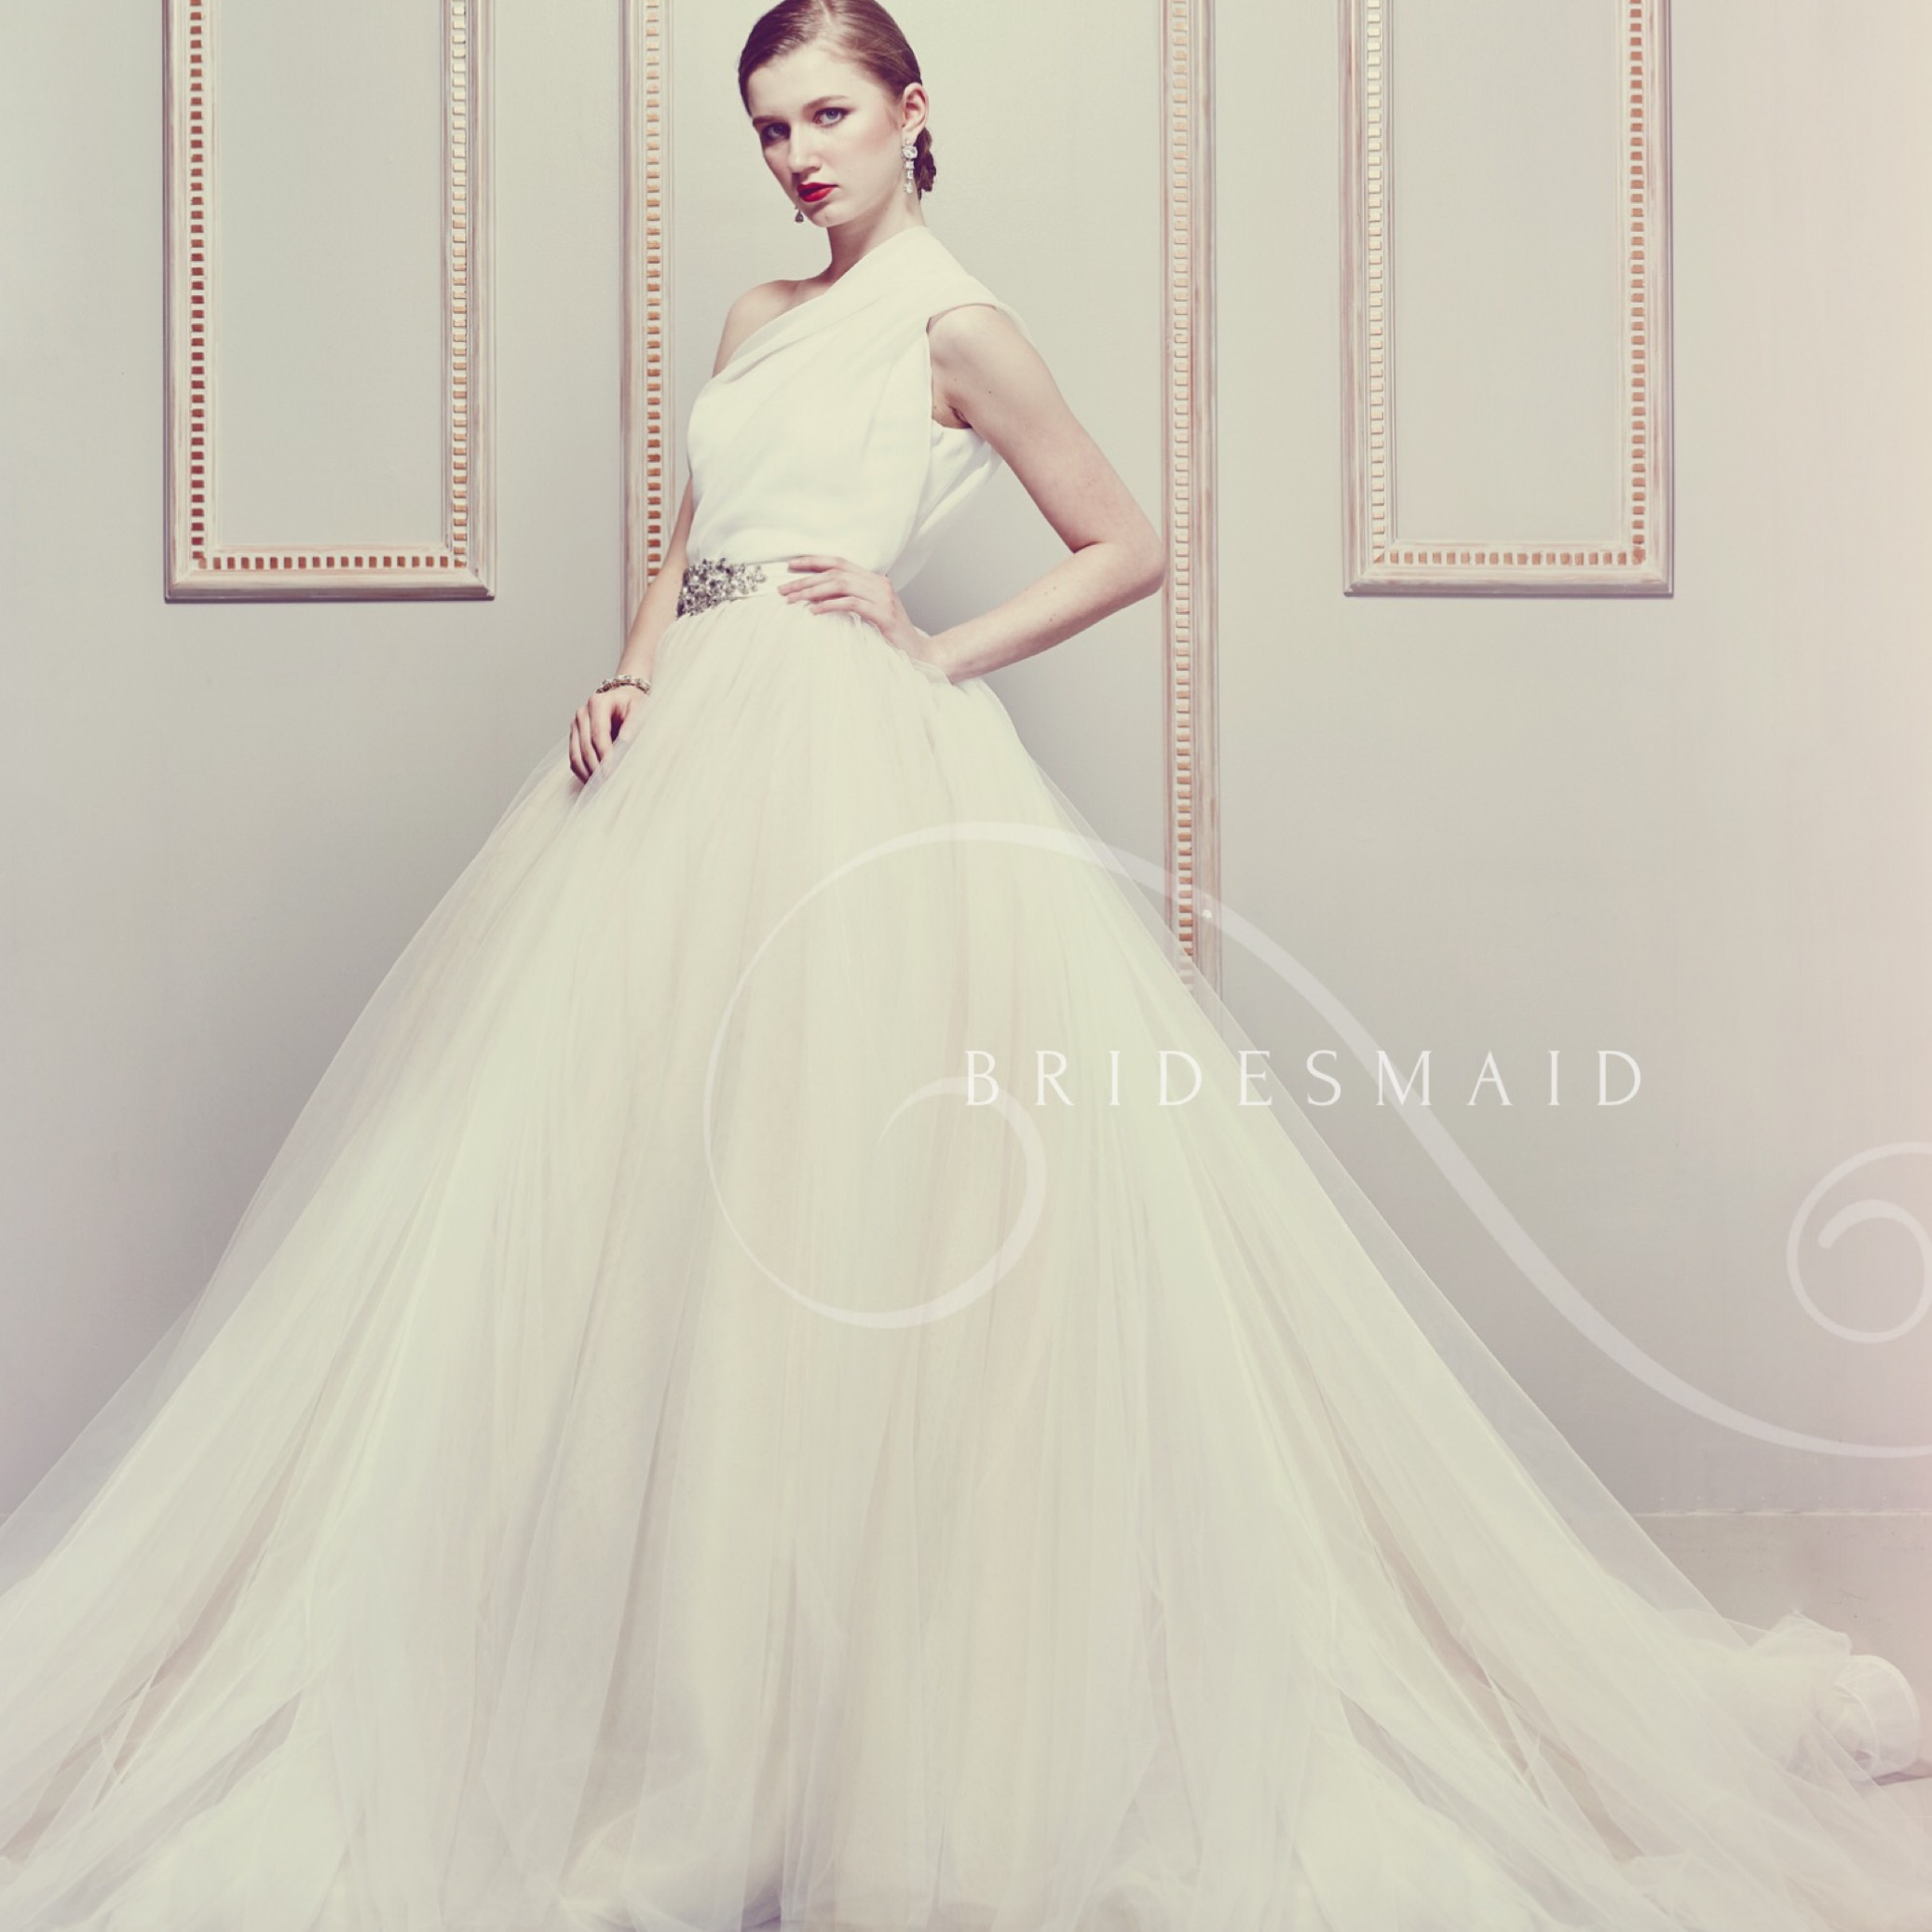 Bridesmaid(Thailand)